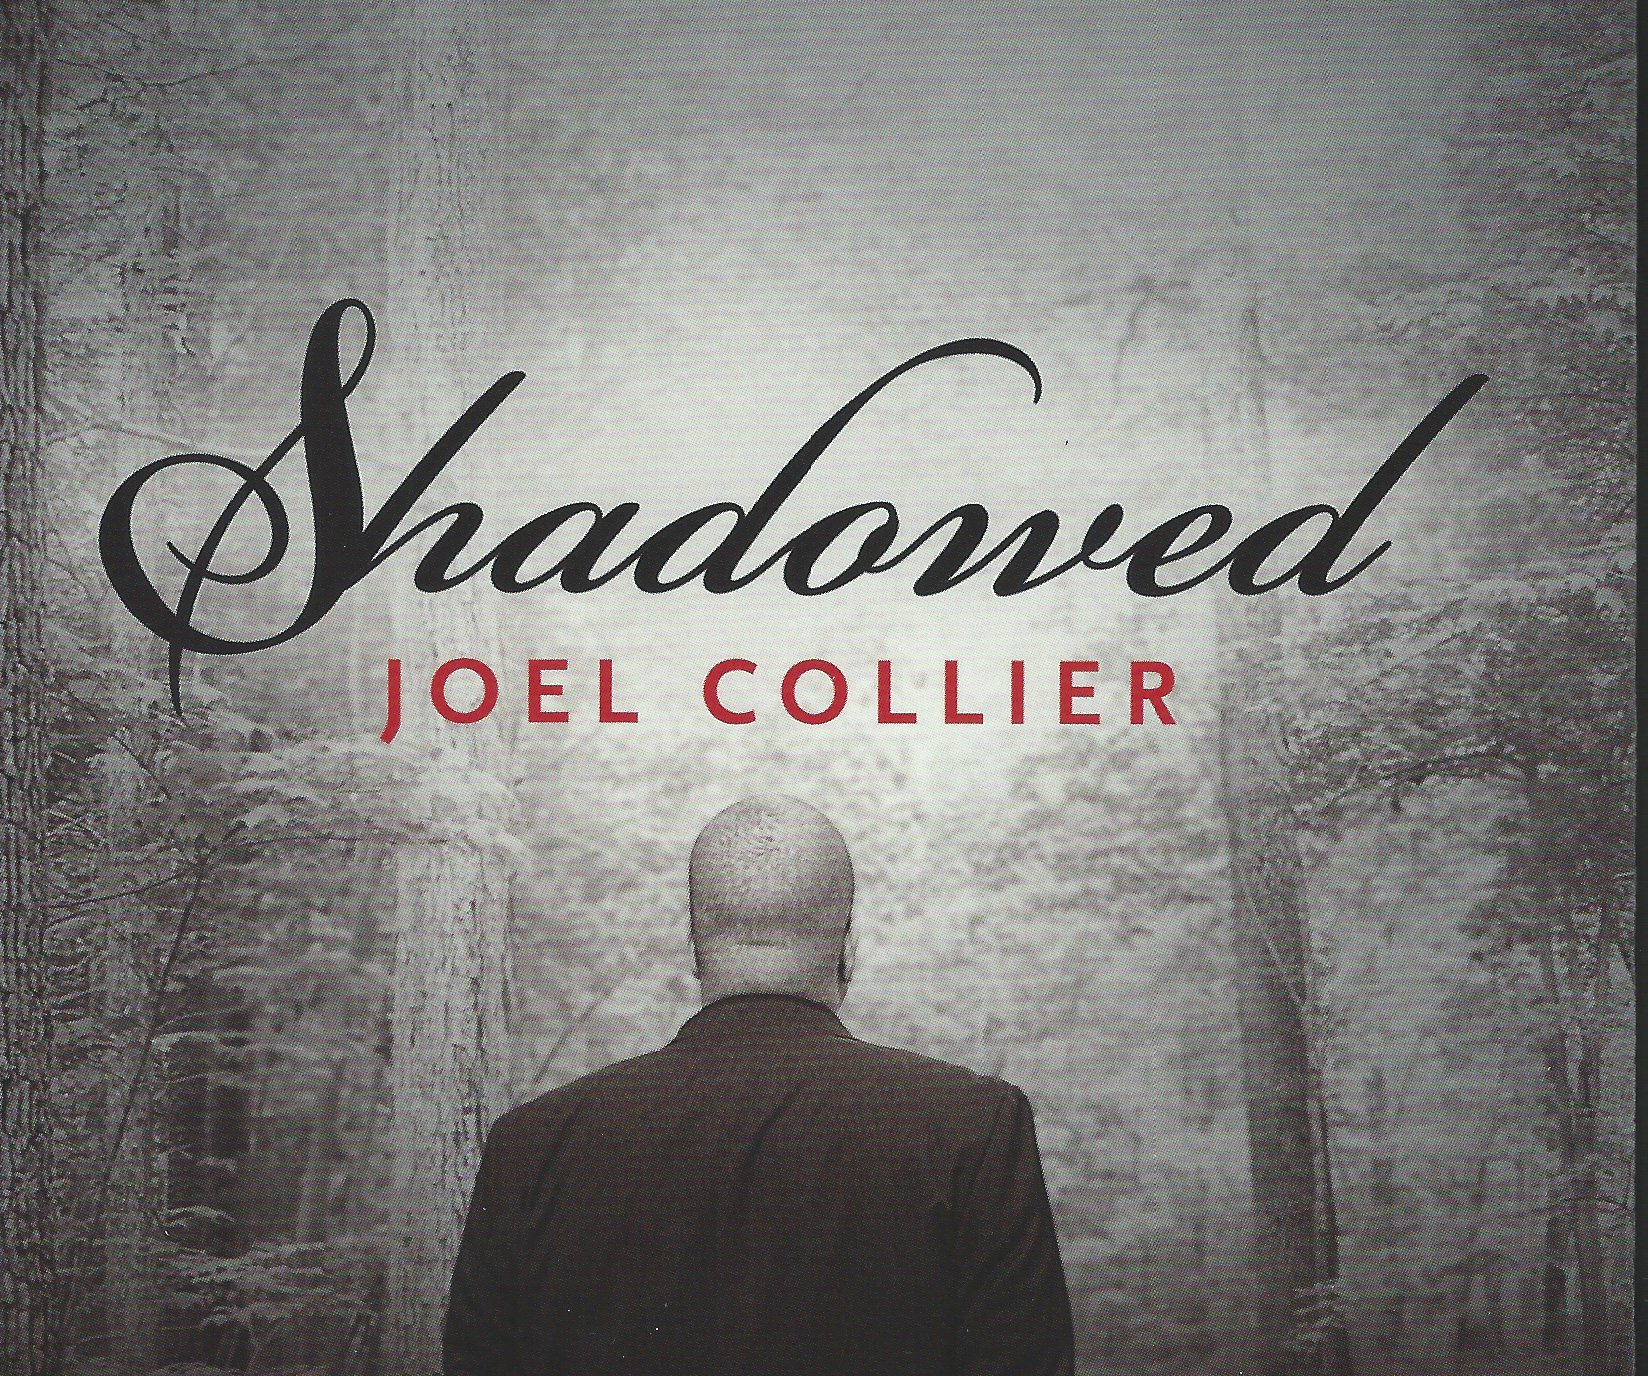 CD - Shadowed - Joel Collier acc. by brass band